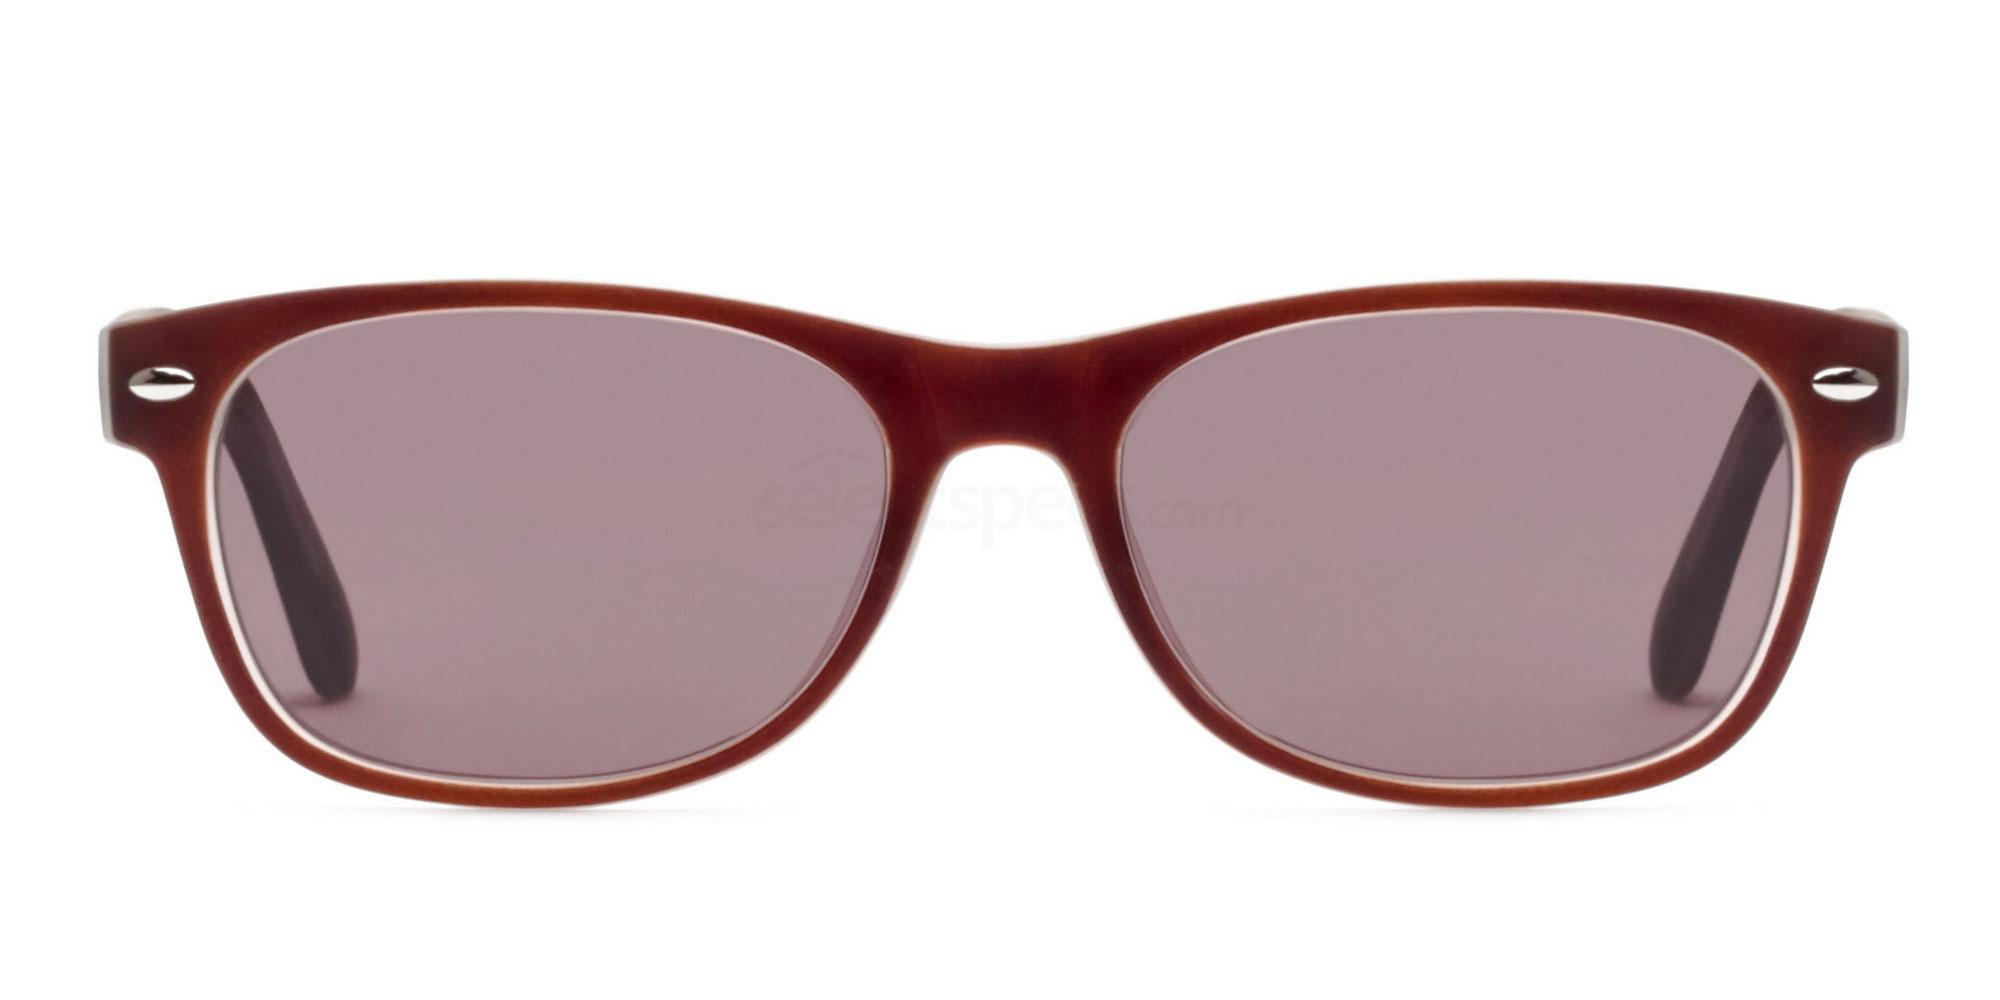 Savannah S8122 sunglasses